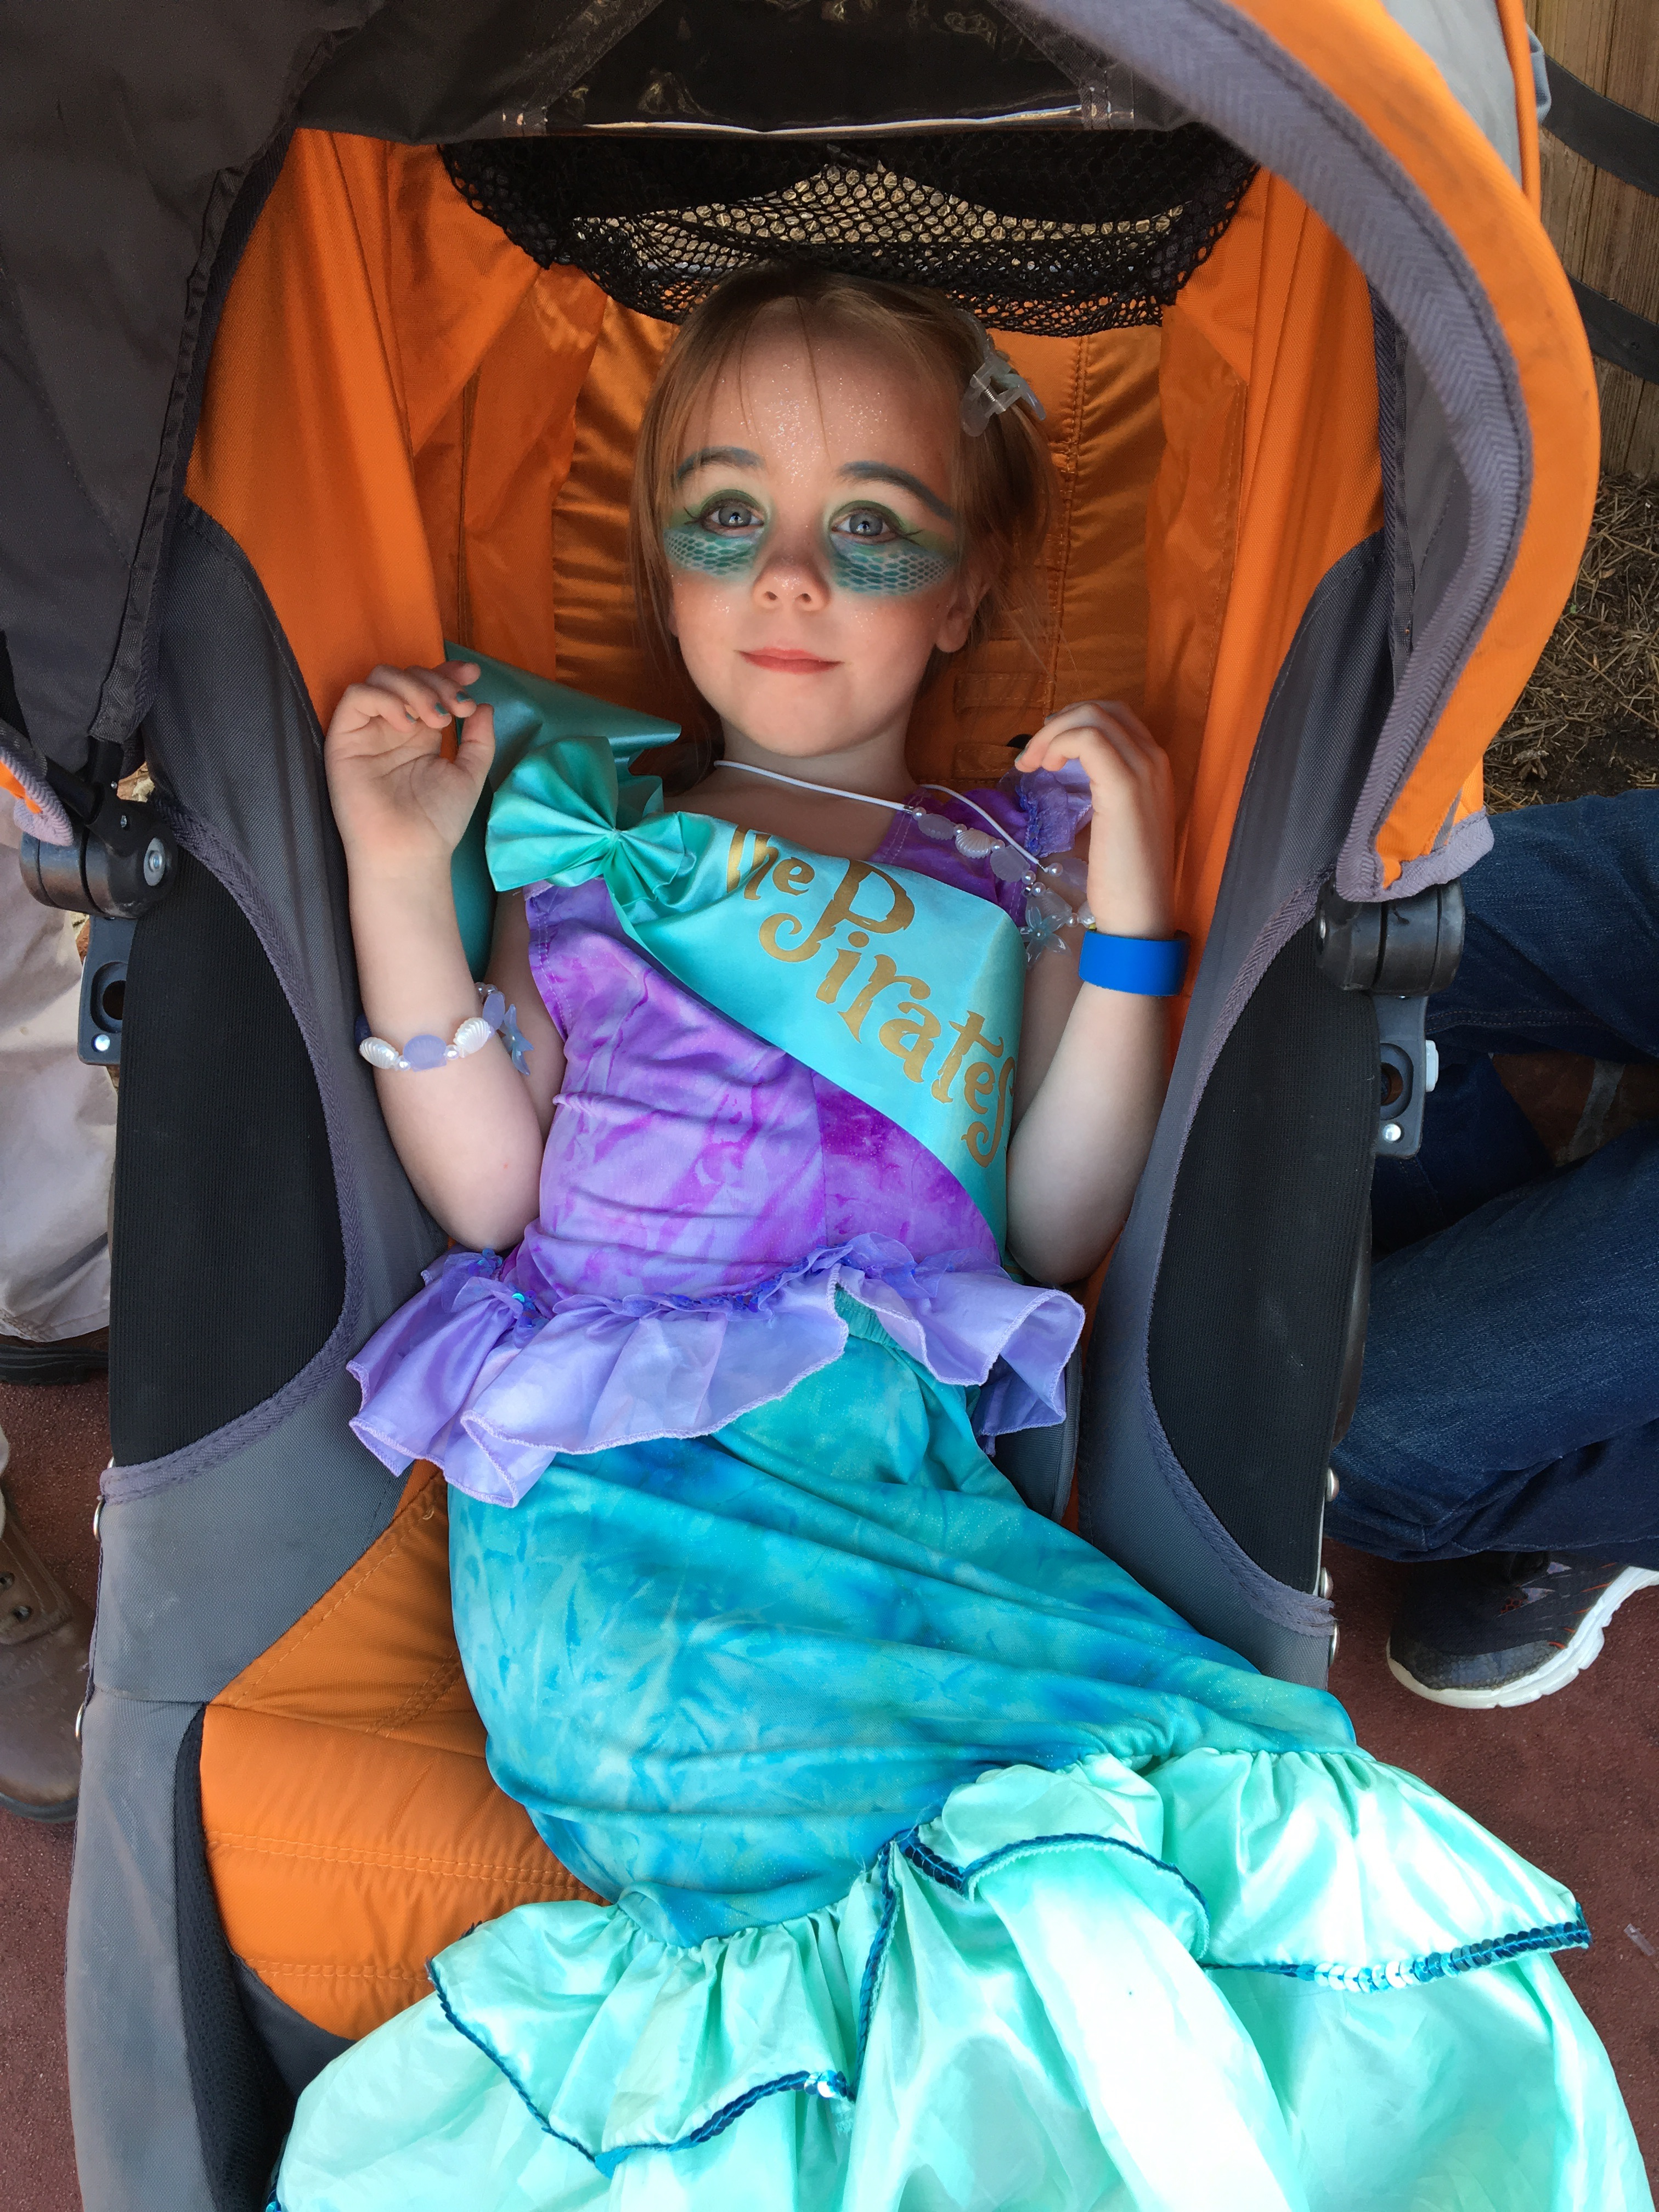 The pirates league mermaid makeover at walt disney world mom our pirates league mermaid makeover appointment was at 10 am so i selected a fastpass to meet ariel in her grotto at 1100 am so we could meet her without m4hsunfo